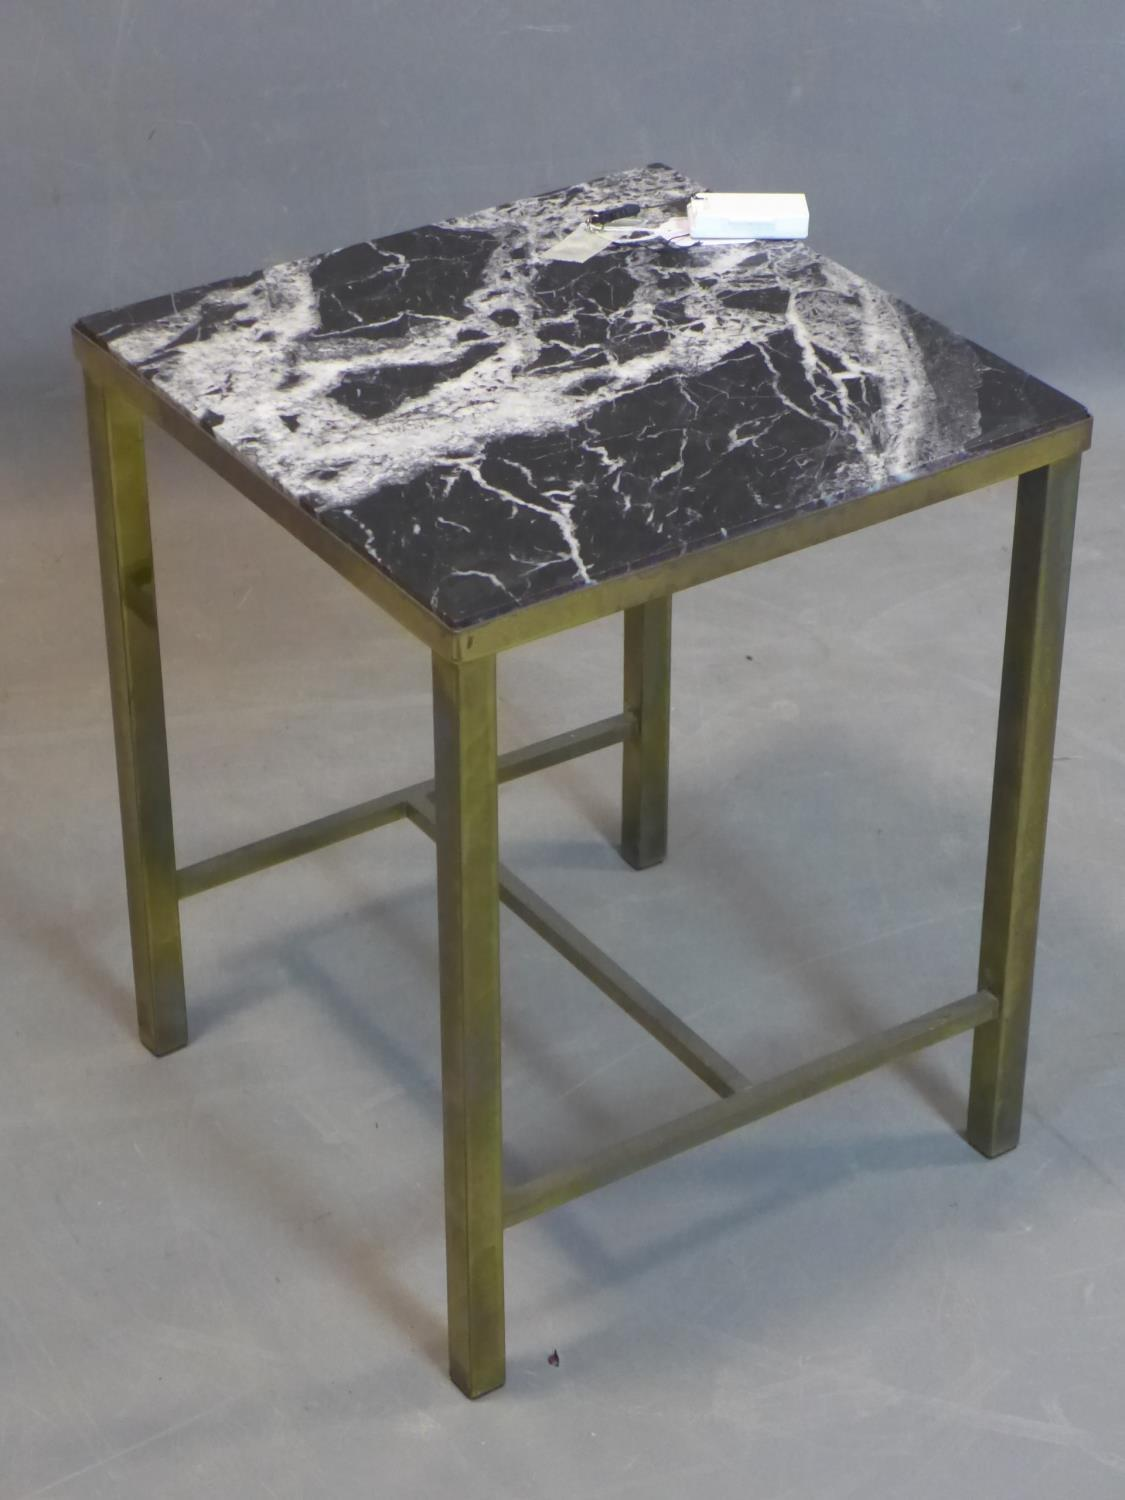 Lot 253 - A brass and marble lamp table with label for Maples Depository, on square legs, H.49 W.39 D.38.5cm